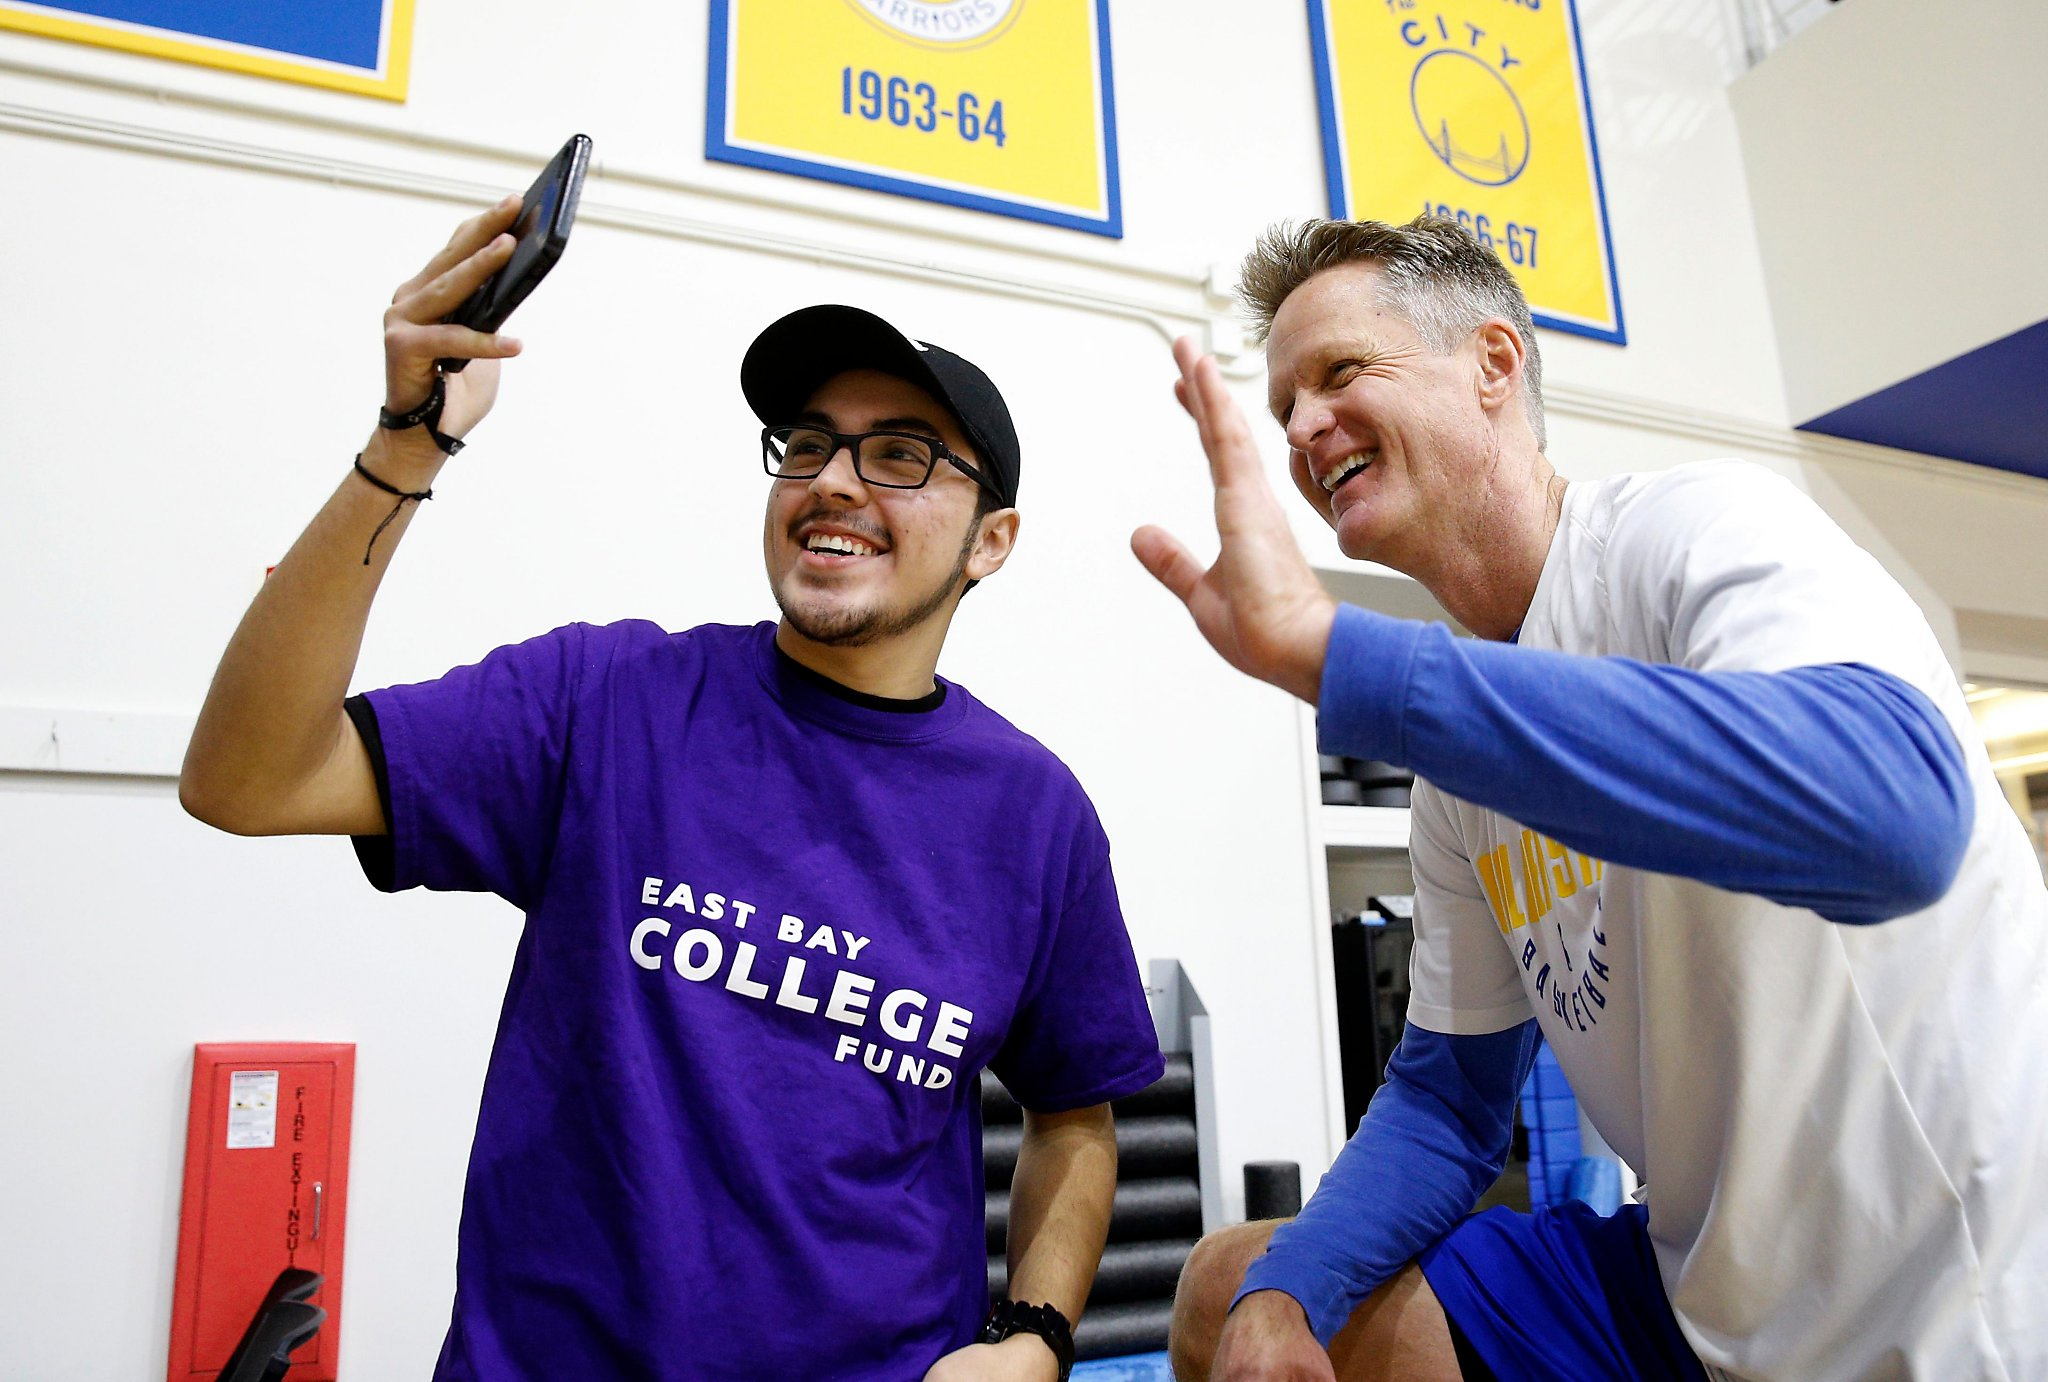 Steve Kerr s other team  East Bay students headed for college -  SFChronicle.com 7735d1315